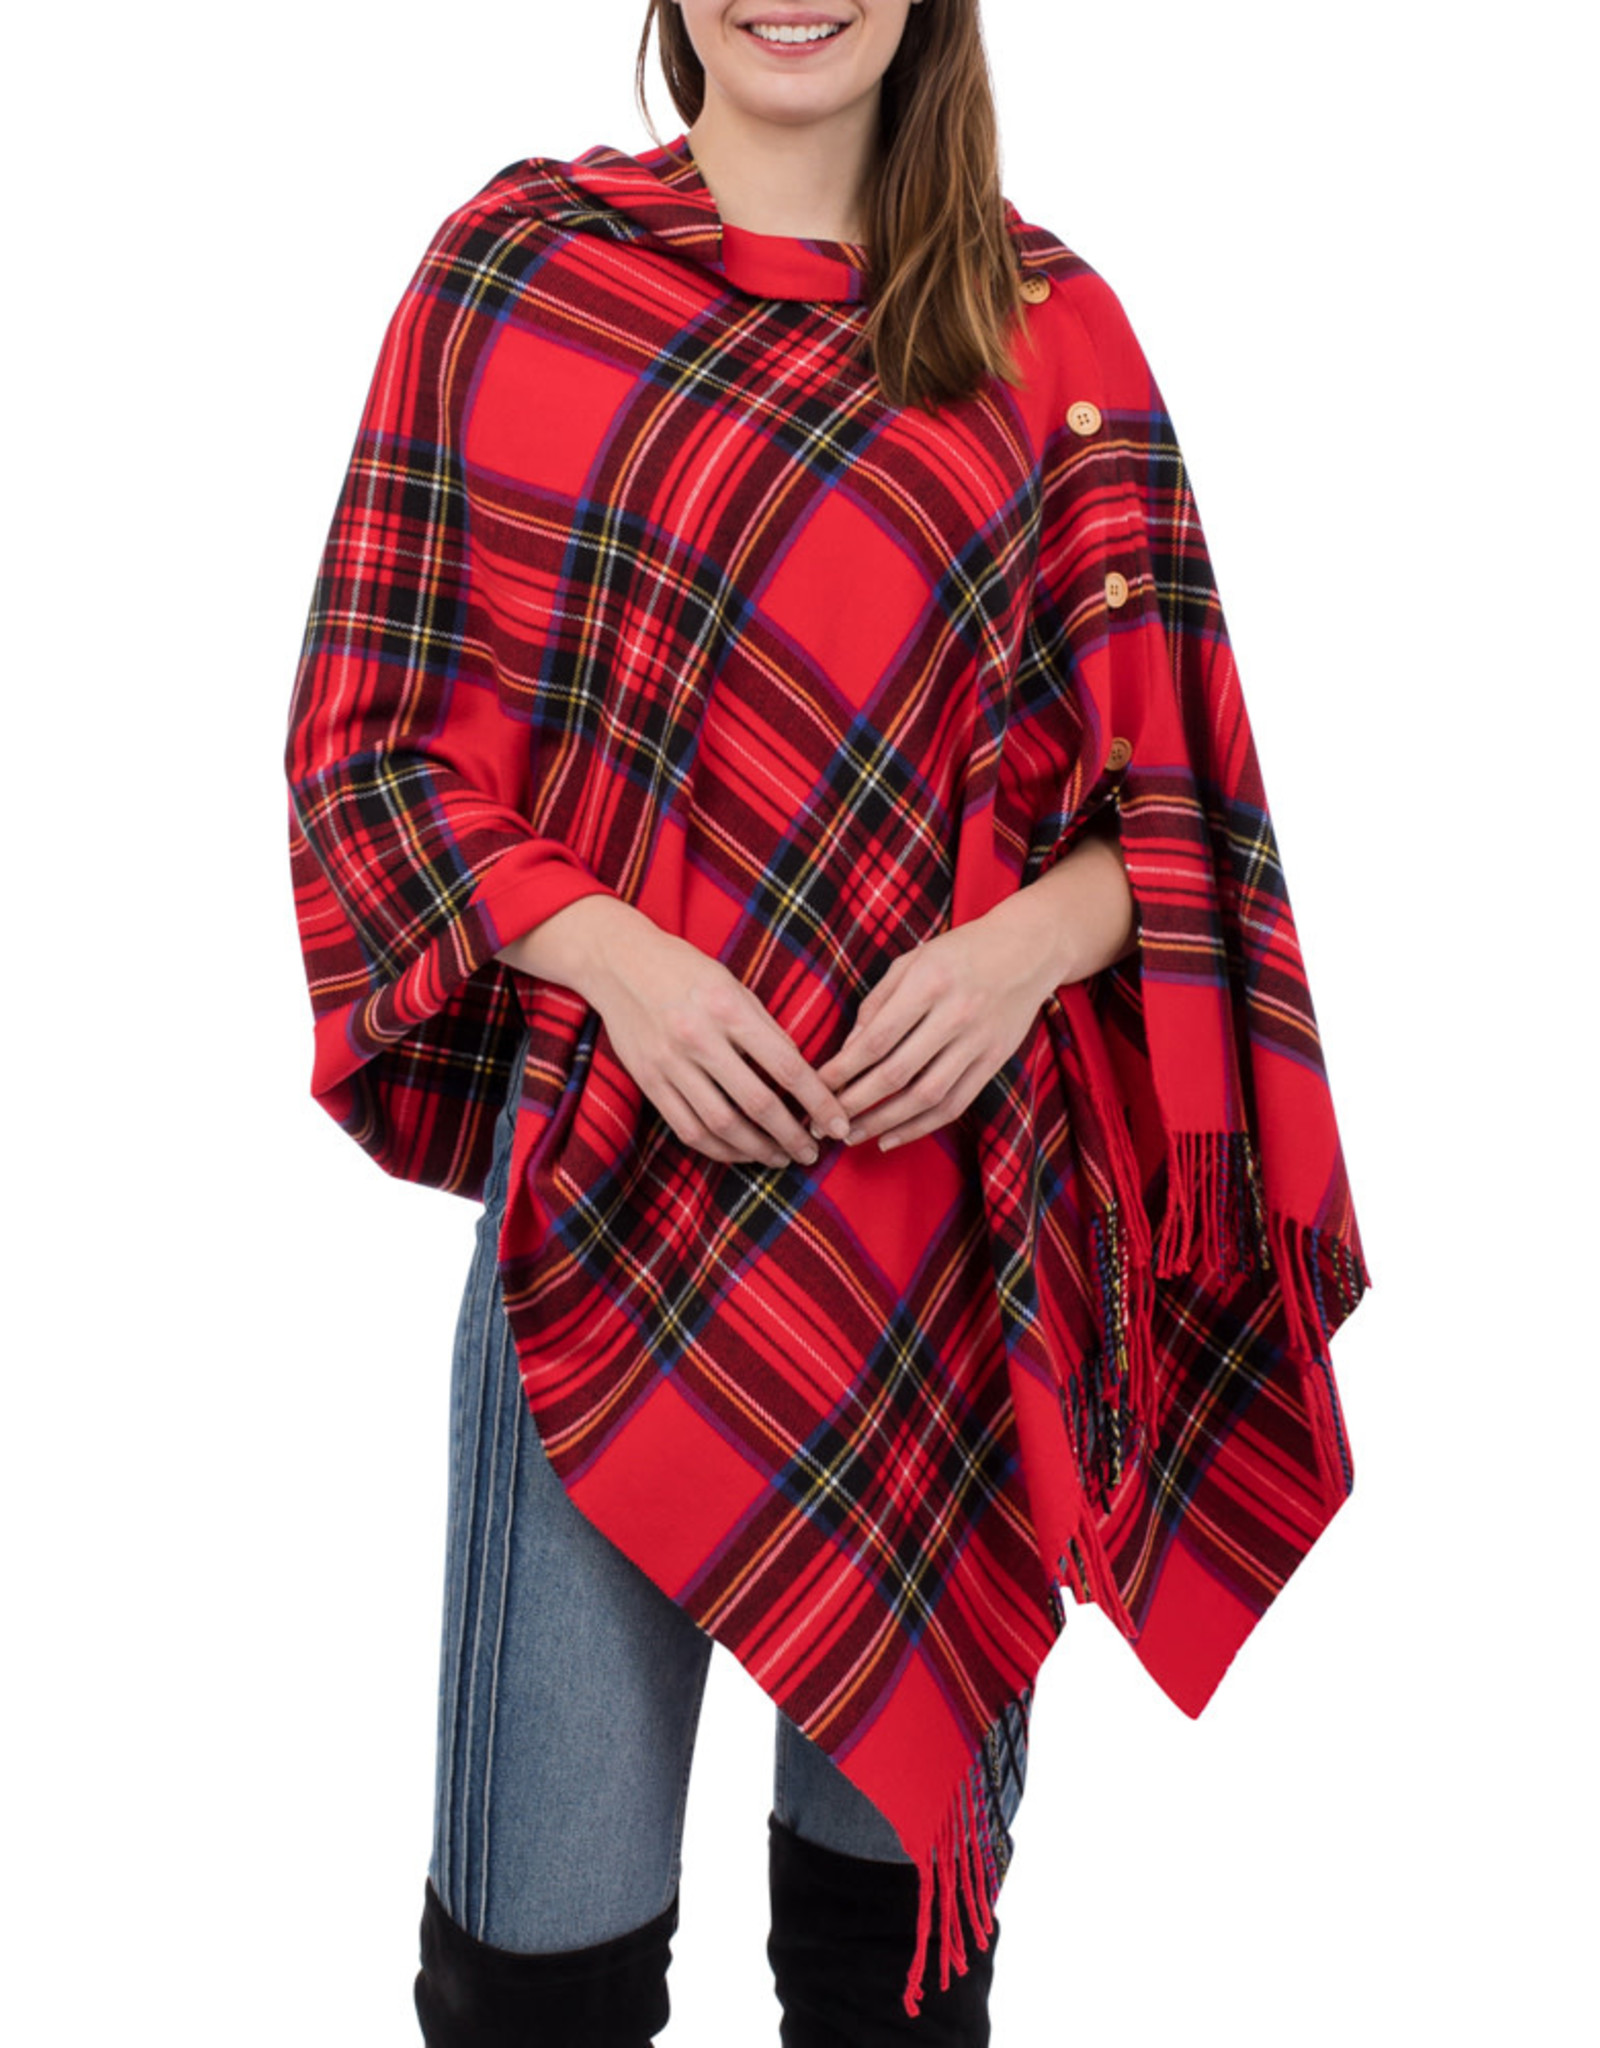 Top It Off 3-in-1 Red Plaid Wrap